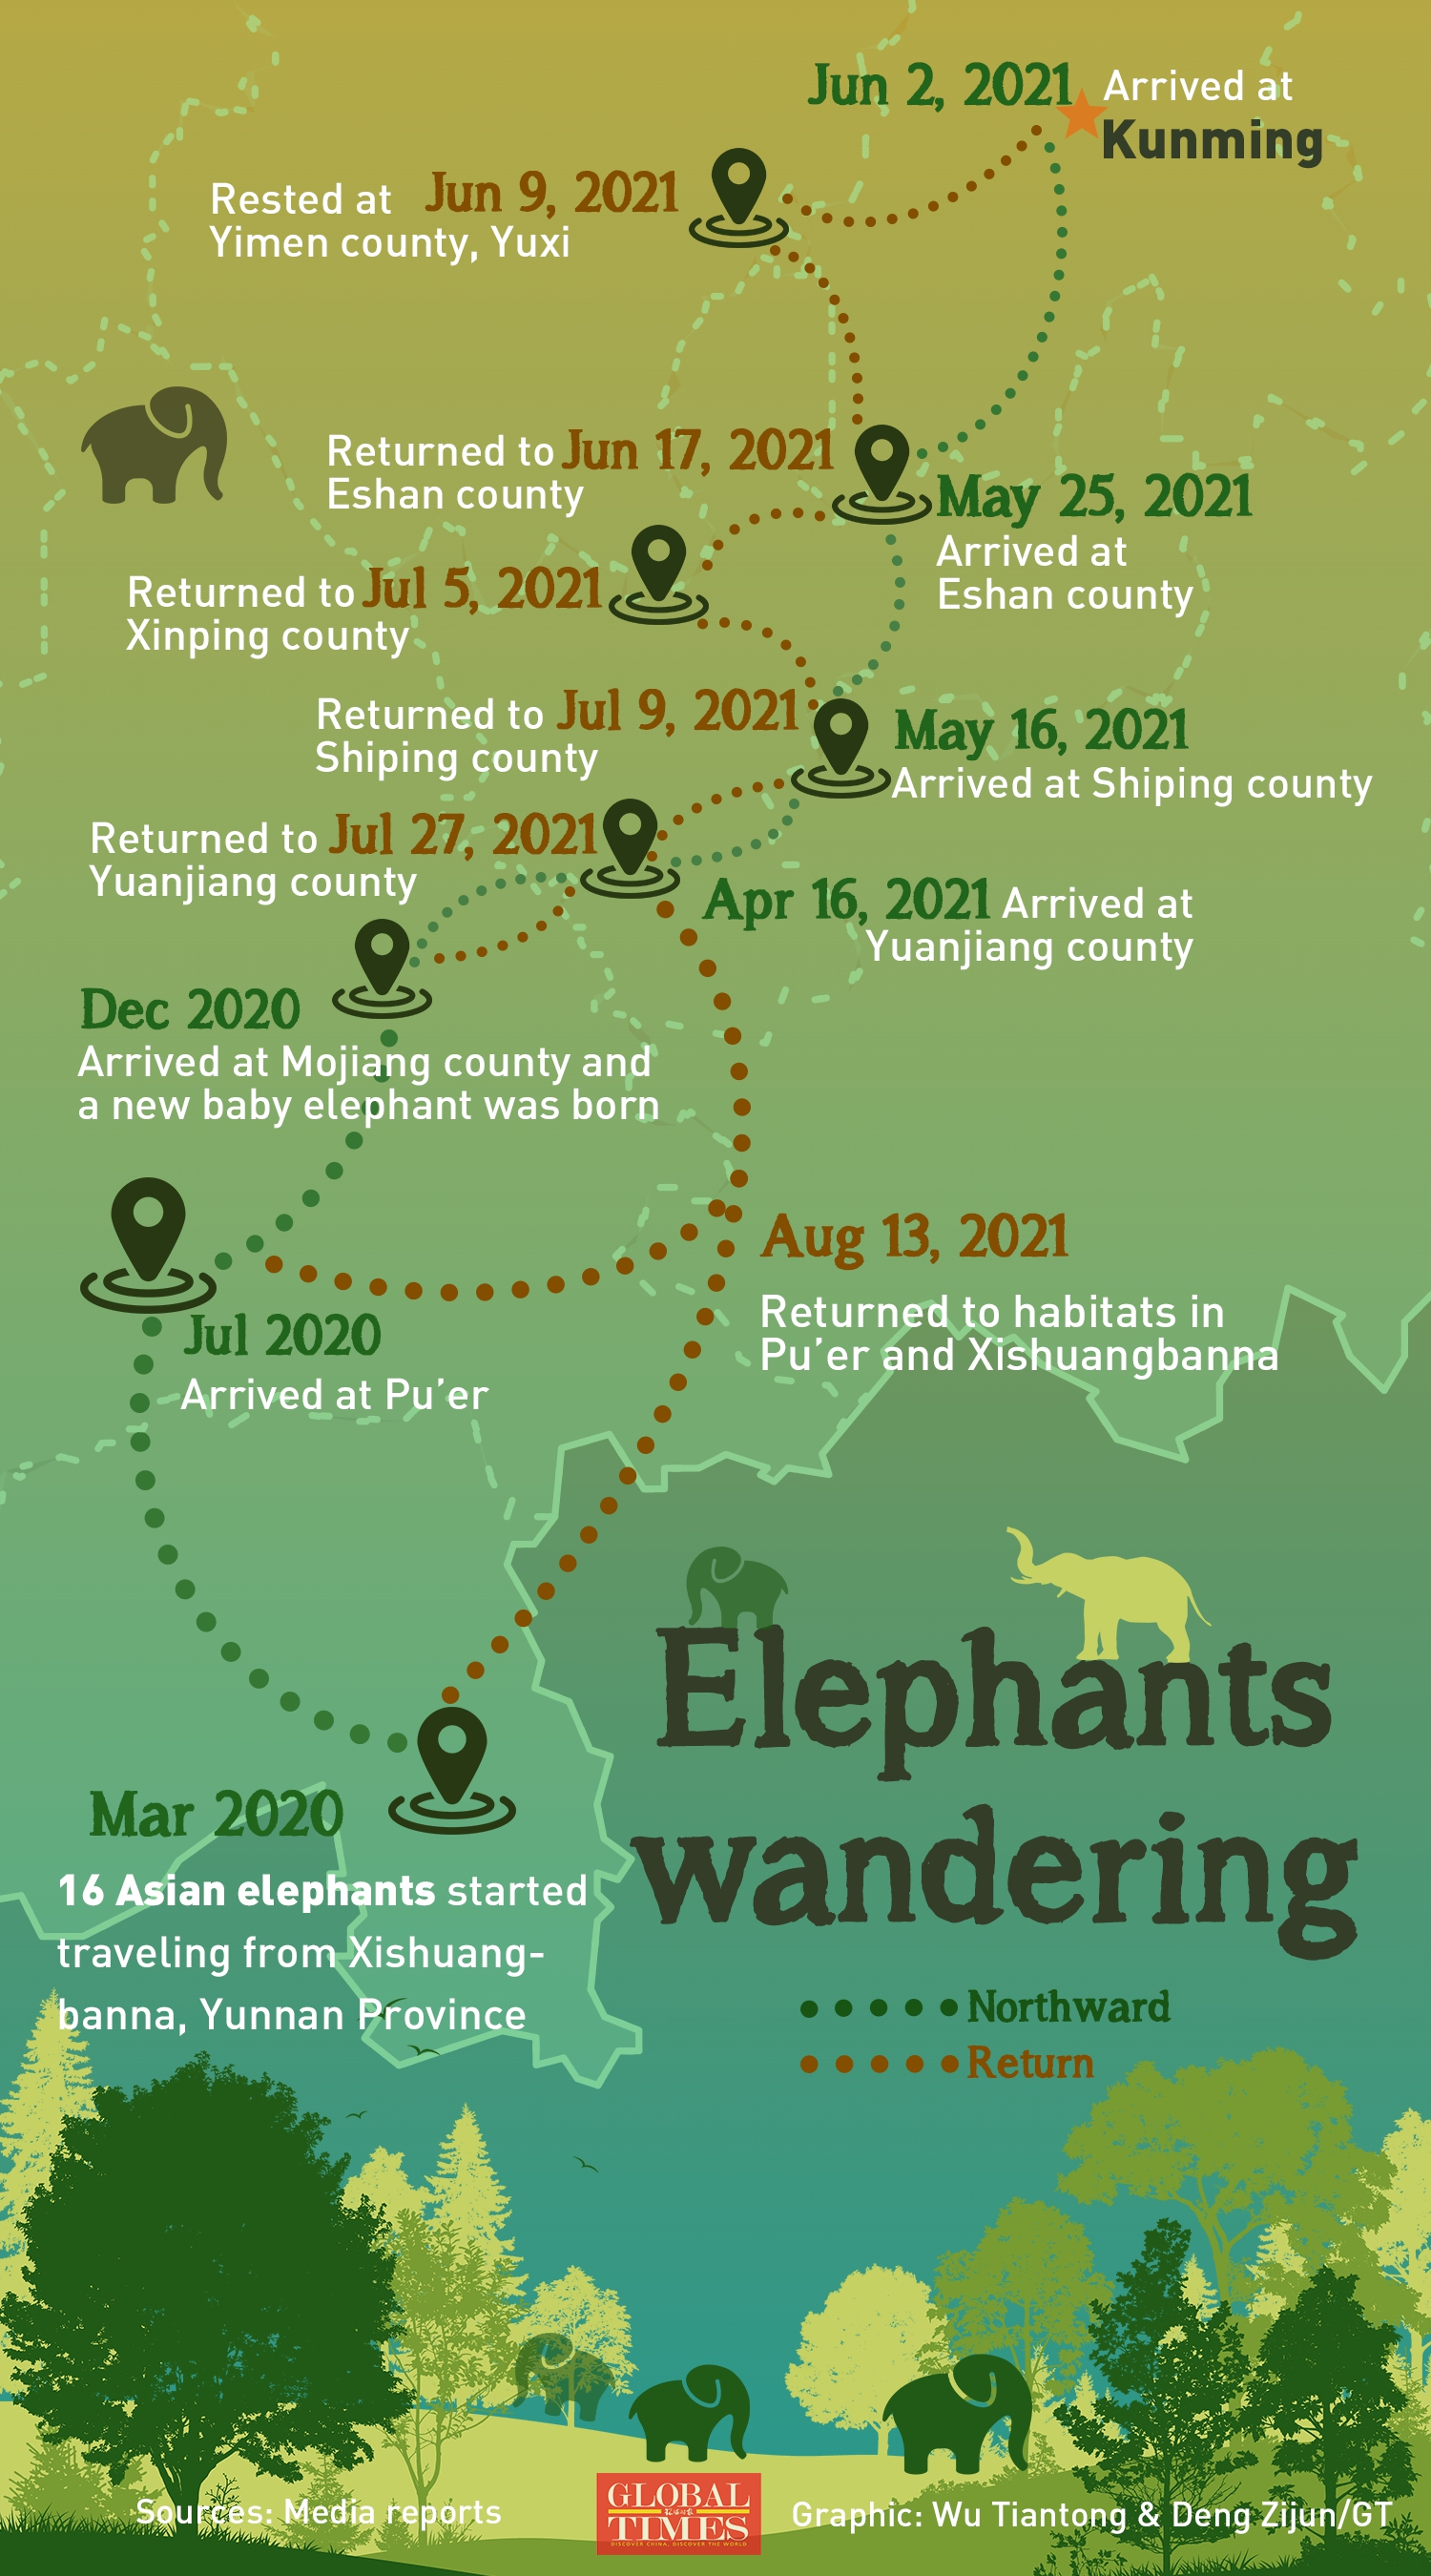 The 16 Asian elephants that started their northward journey in March 2020 from Xishuangbanna returned to their habitat in Xishuangbanna, Southwest China's Yunnan Province in August, spending hundreds of days and covering over 1,300 kilometers in their wandering. More than 25,000 people were deployed and 180 tons of elephant food were provided to ensure the safety of the elephants and local residents.